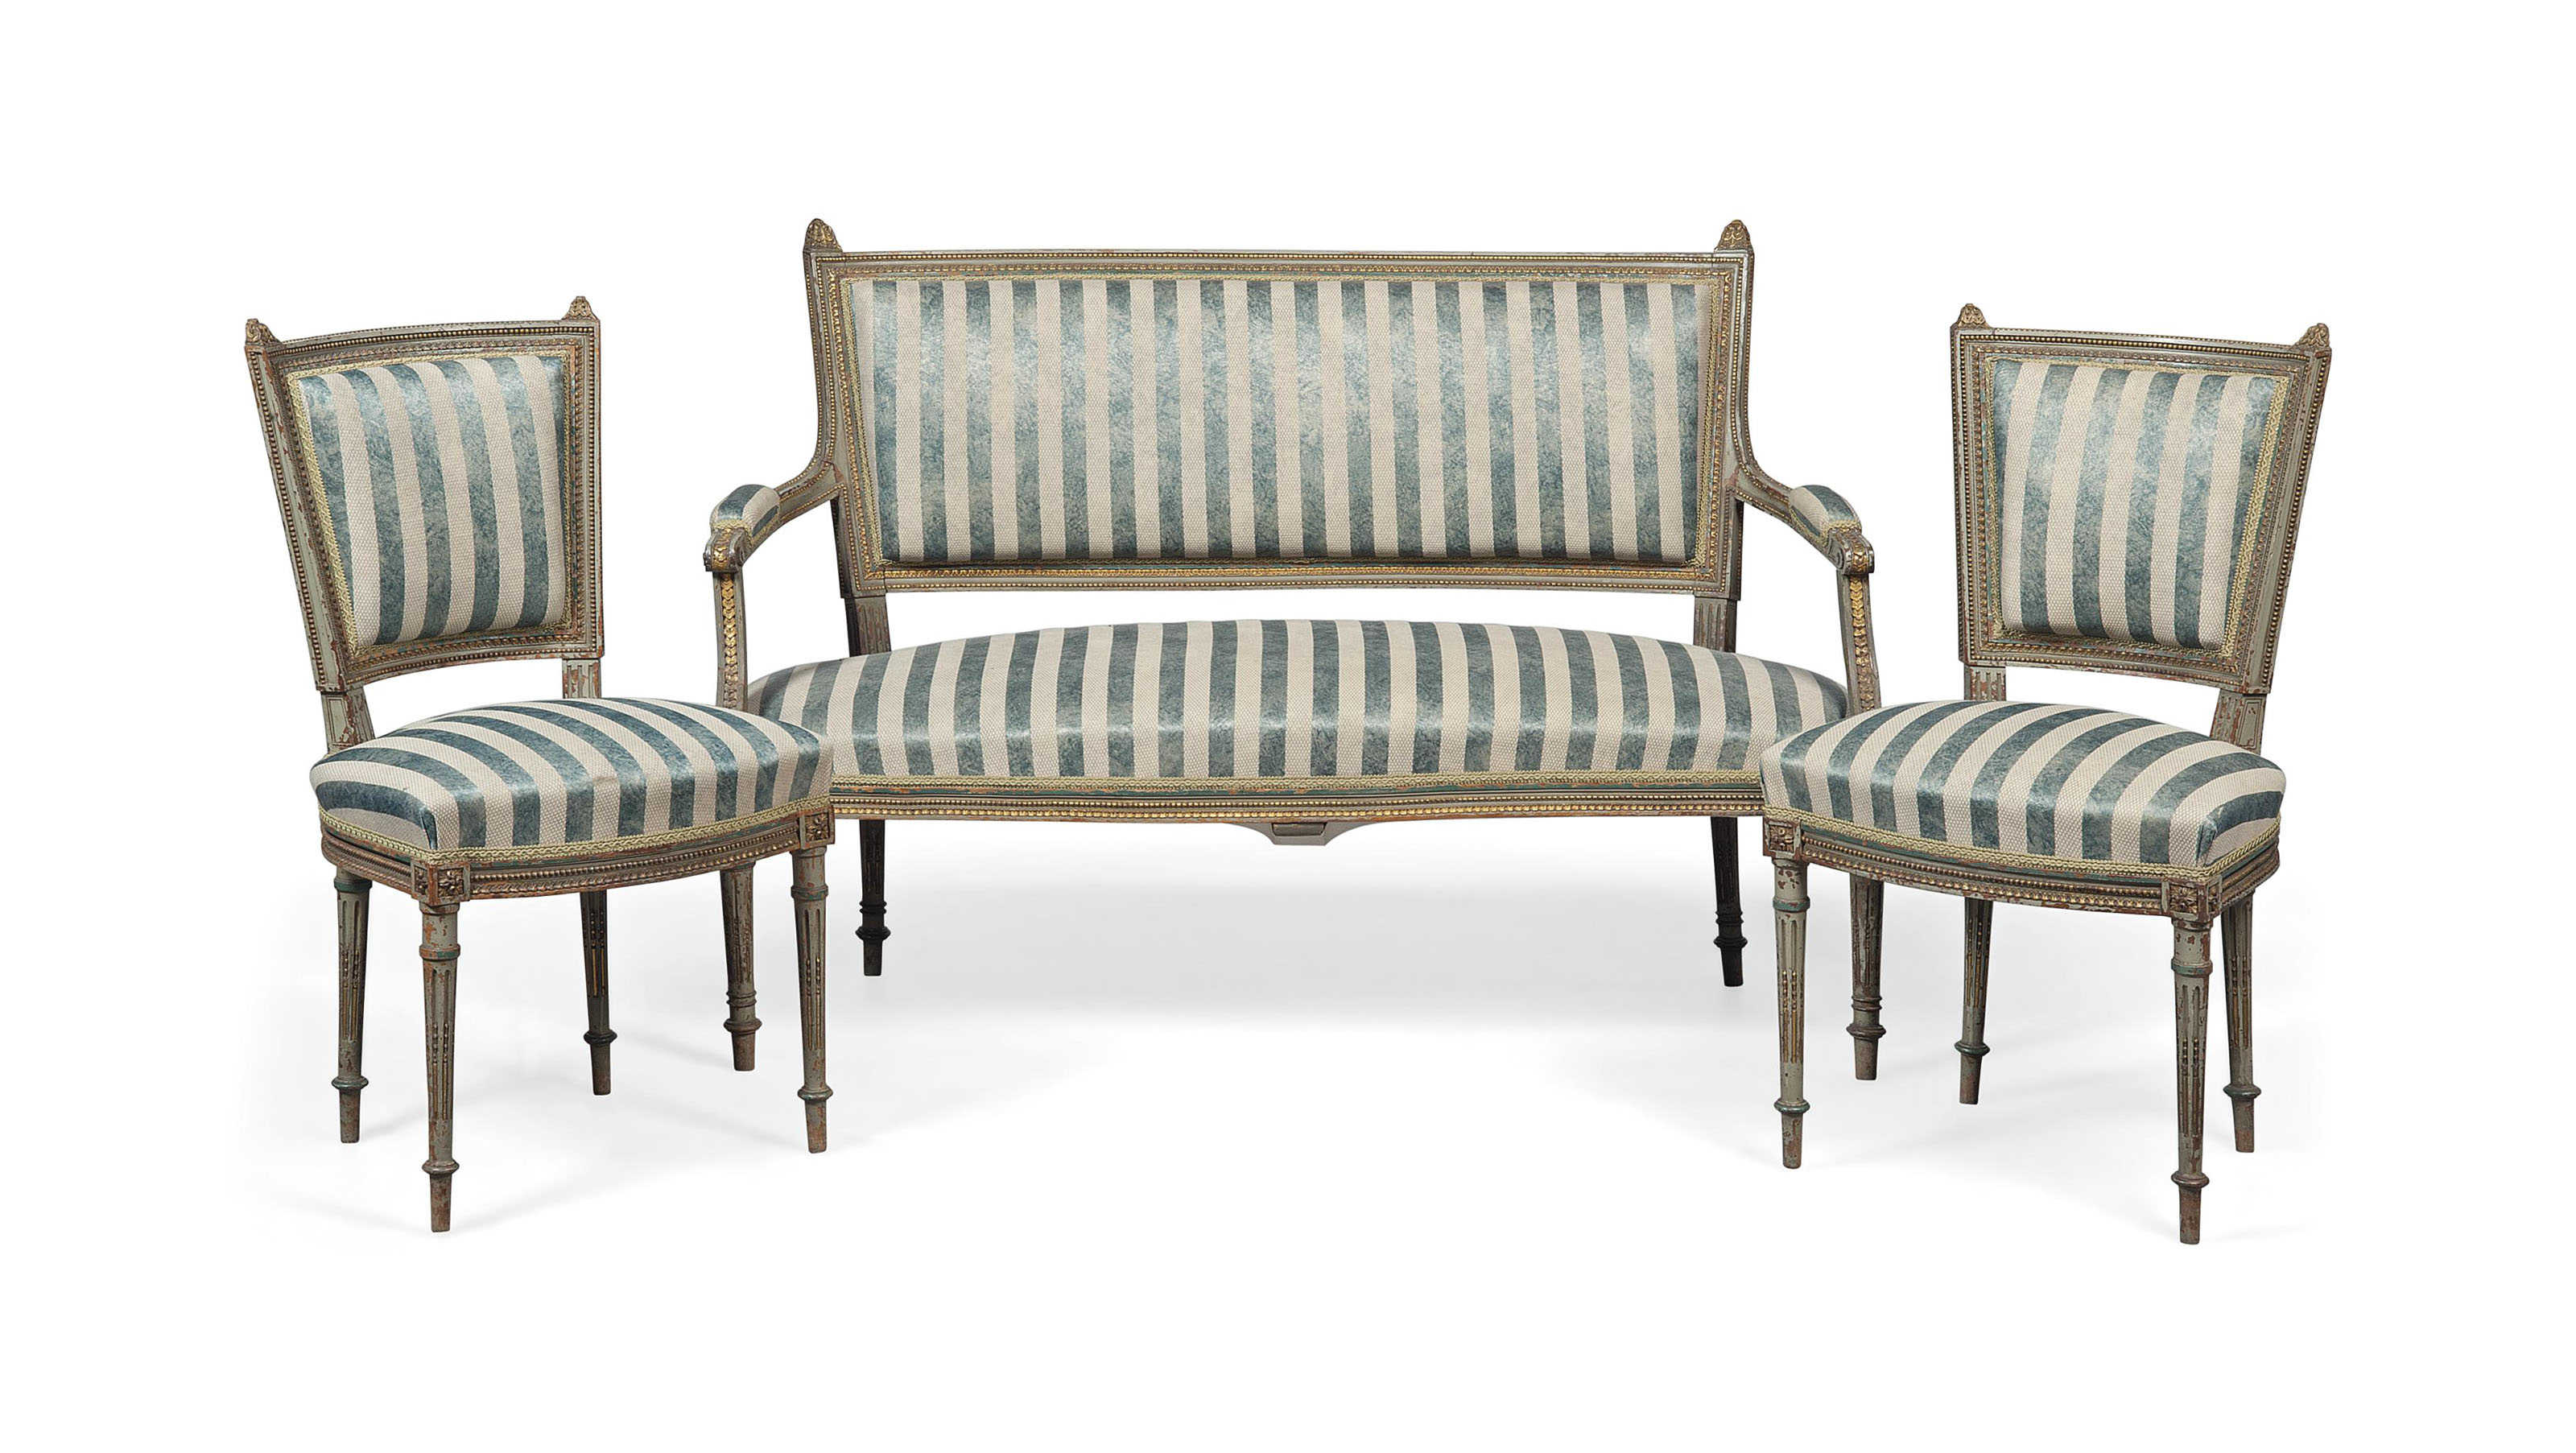 A FRENCH GREY PAINTED AND PARCEL GILT SALON SUITE